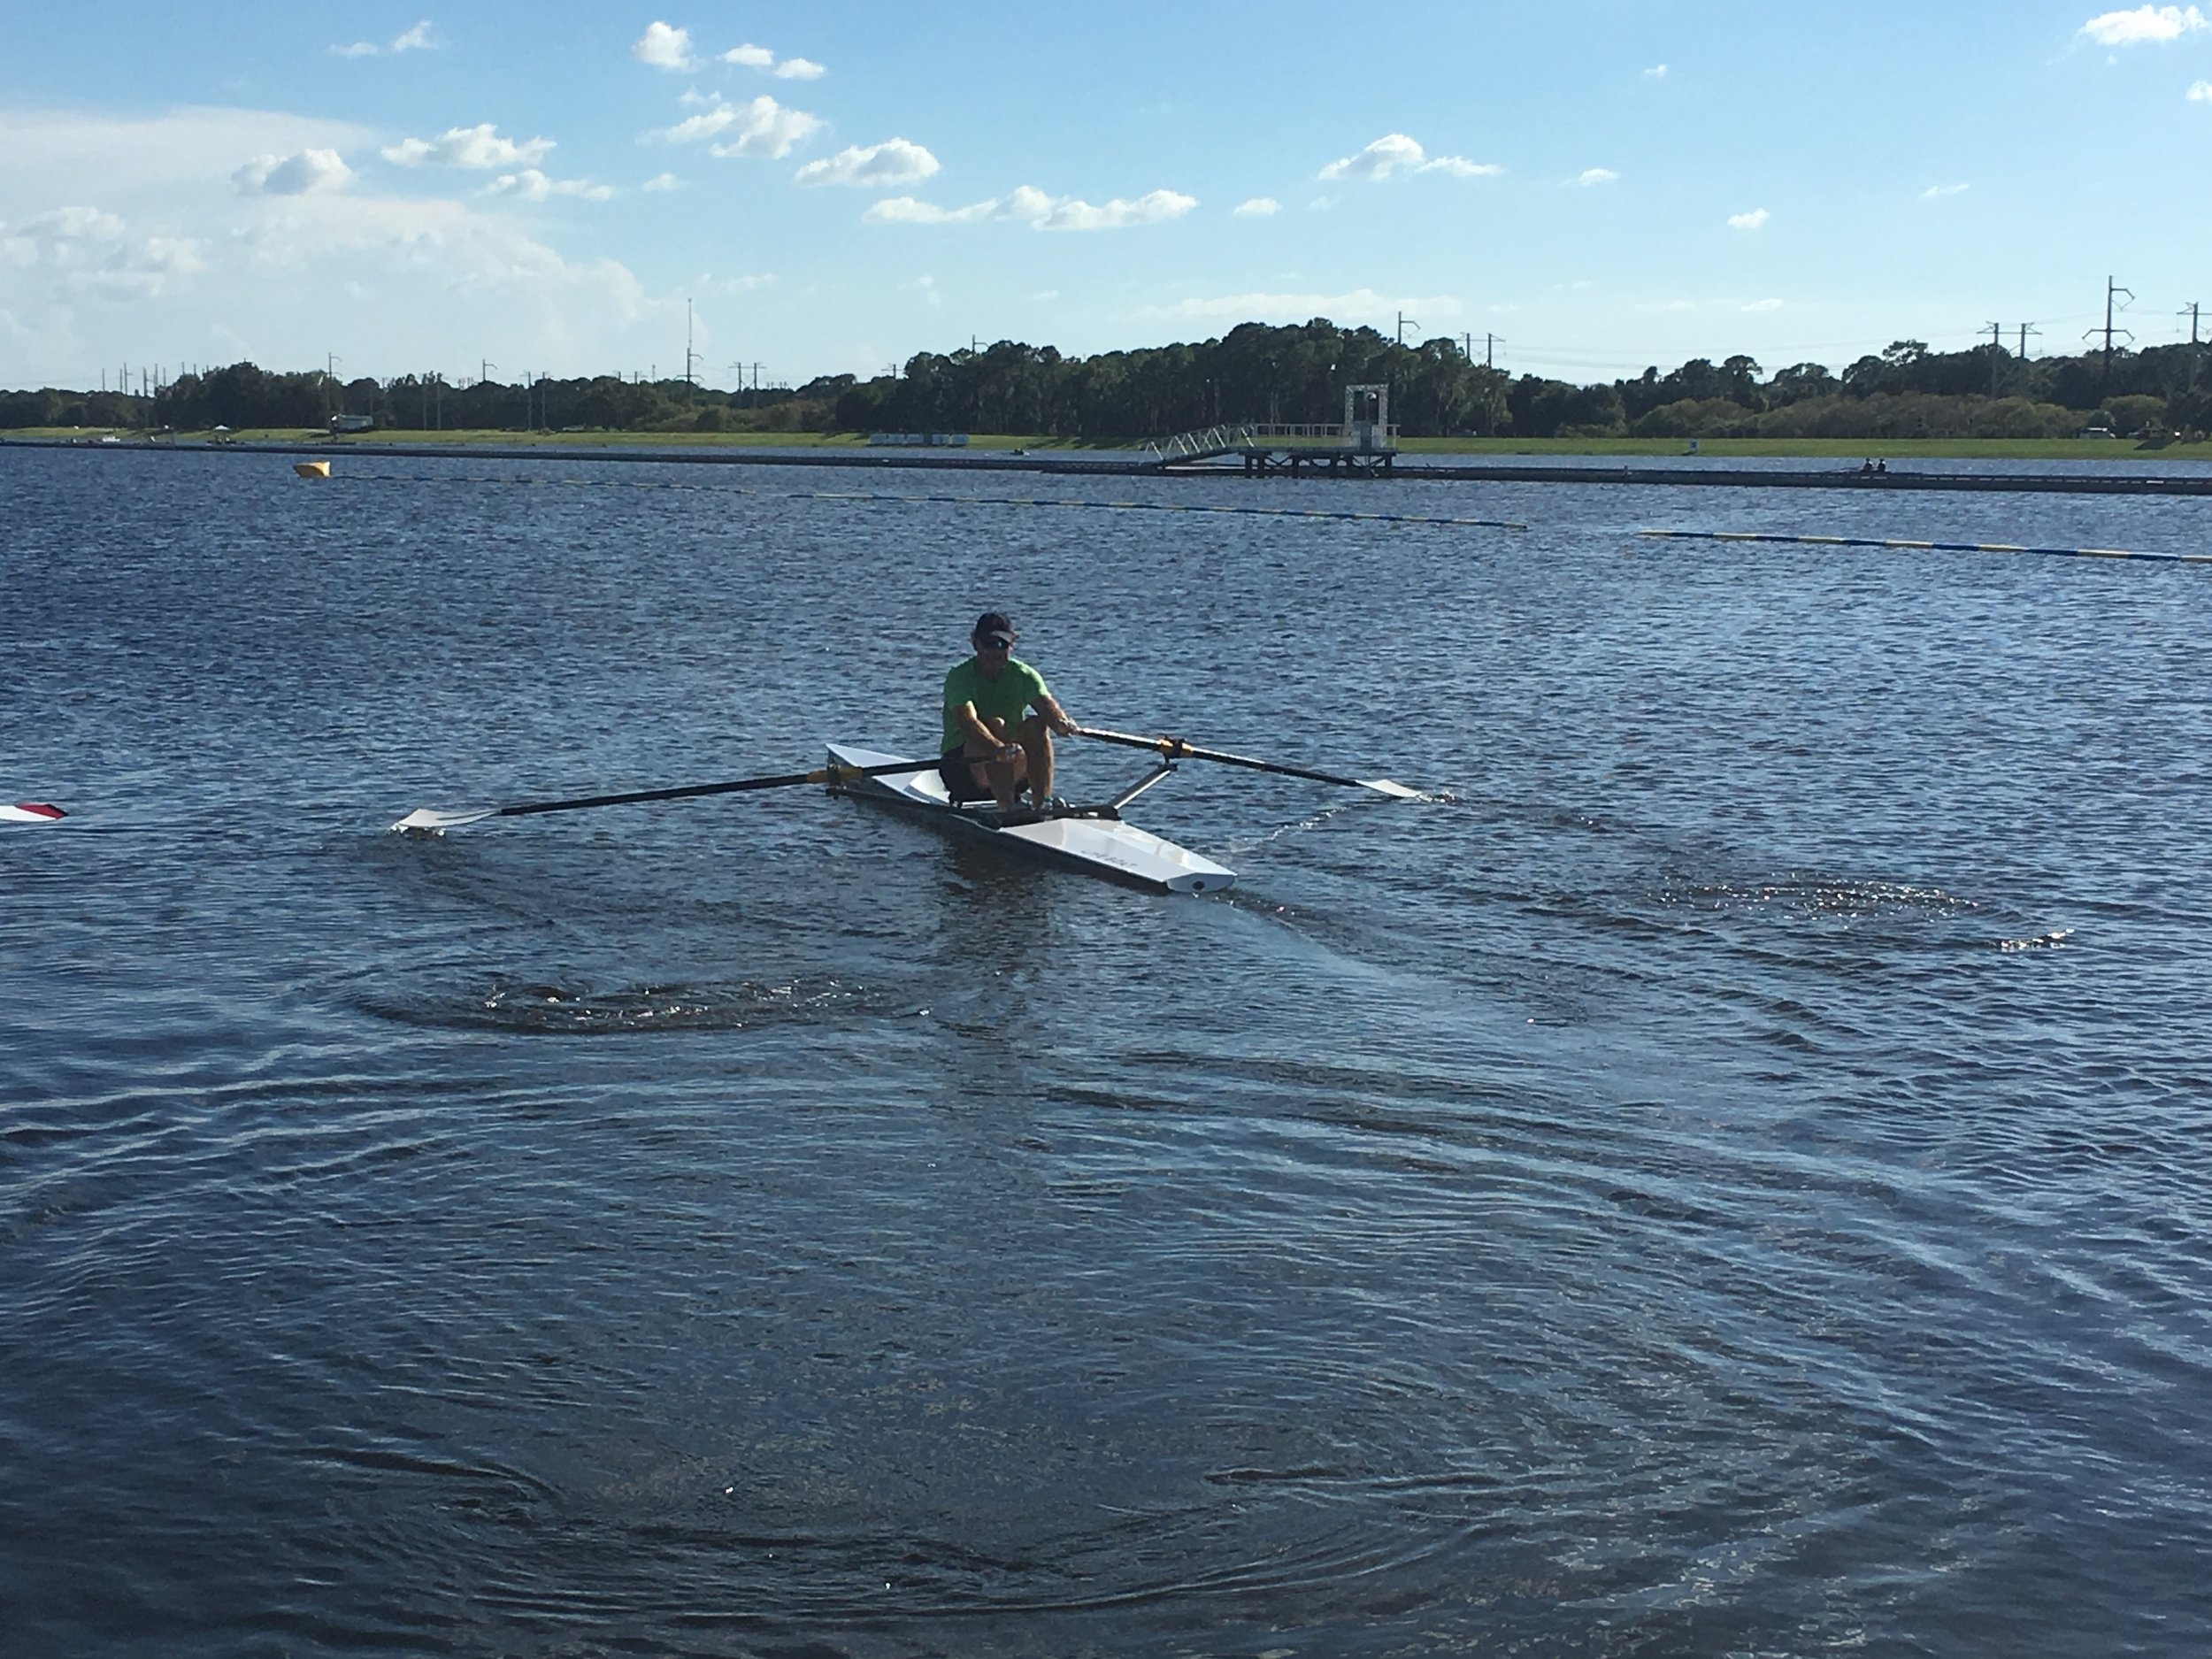 LiteRiver on the course - Here's Greg from Michigan LiteBoat about to take the LiteRiver down the course at the World Rowing Masters Regatta, after hours!!